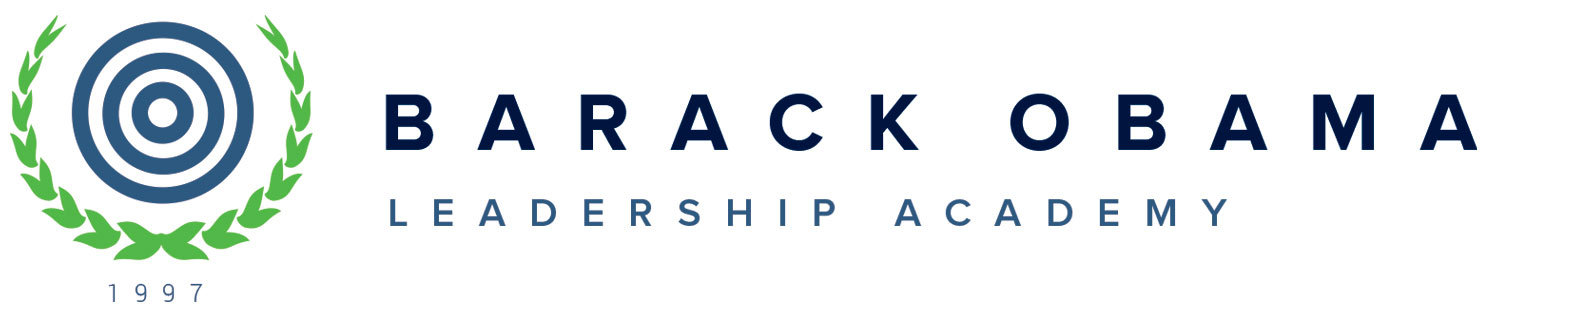 Barack Obama Leadership Academy